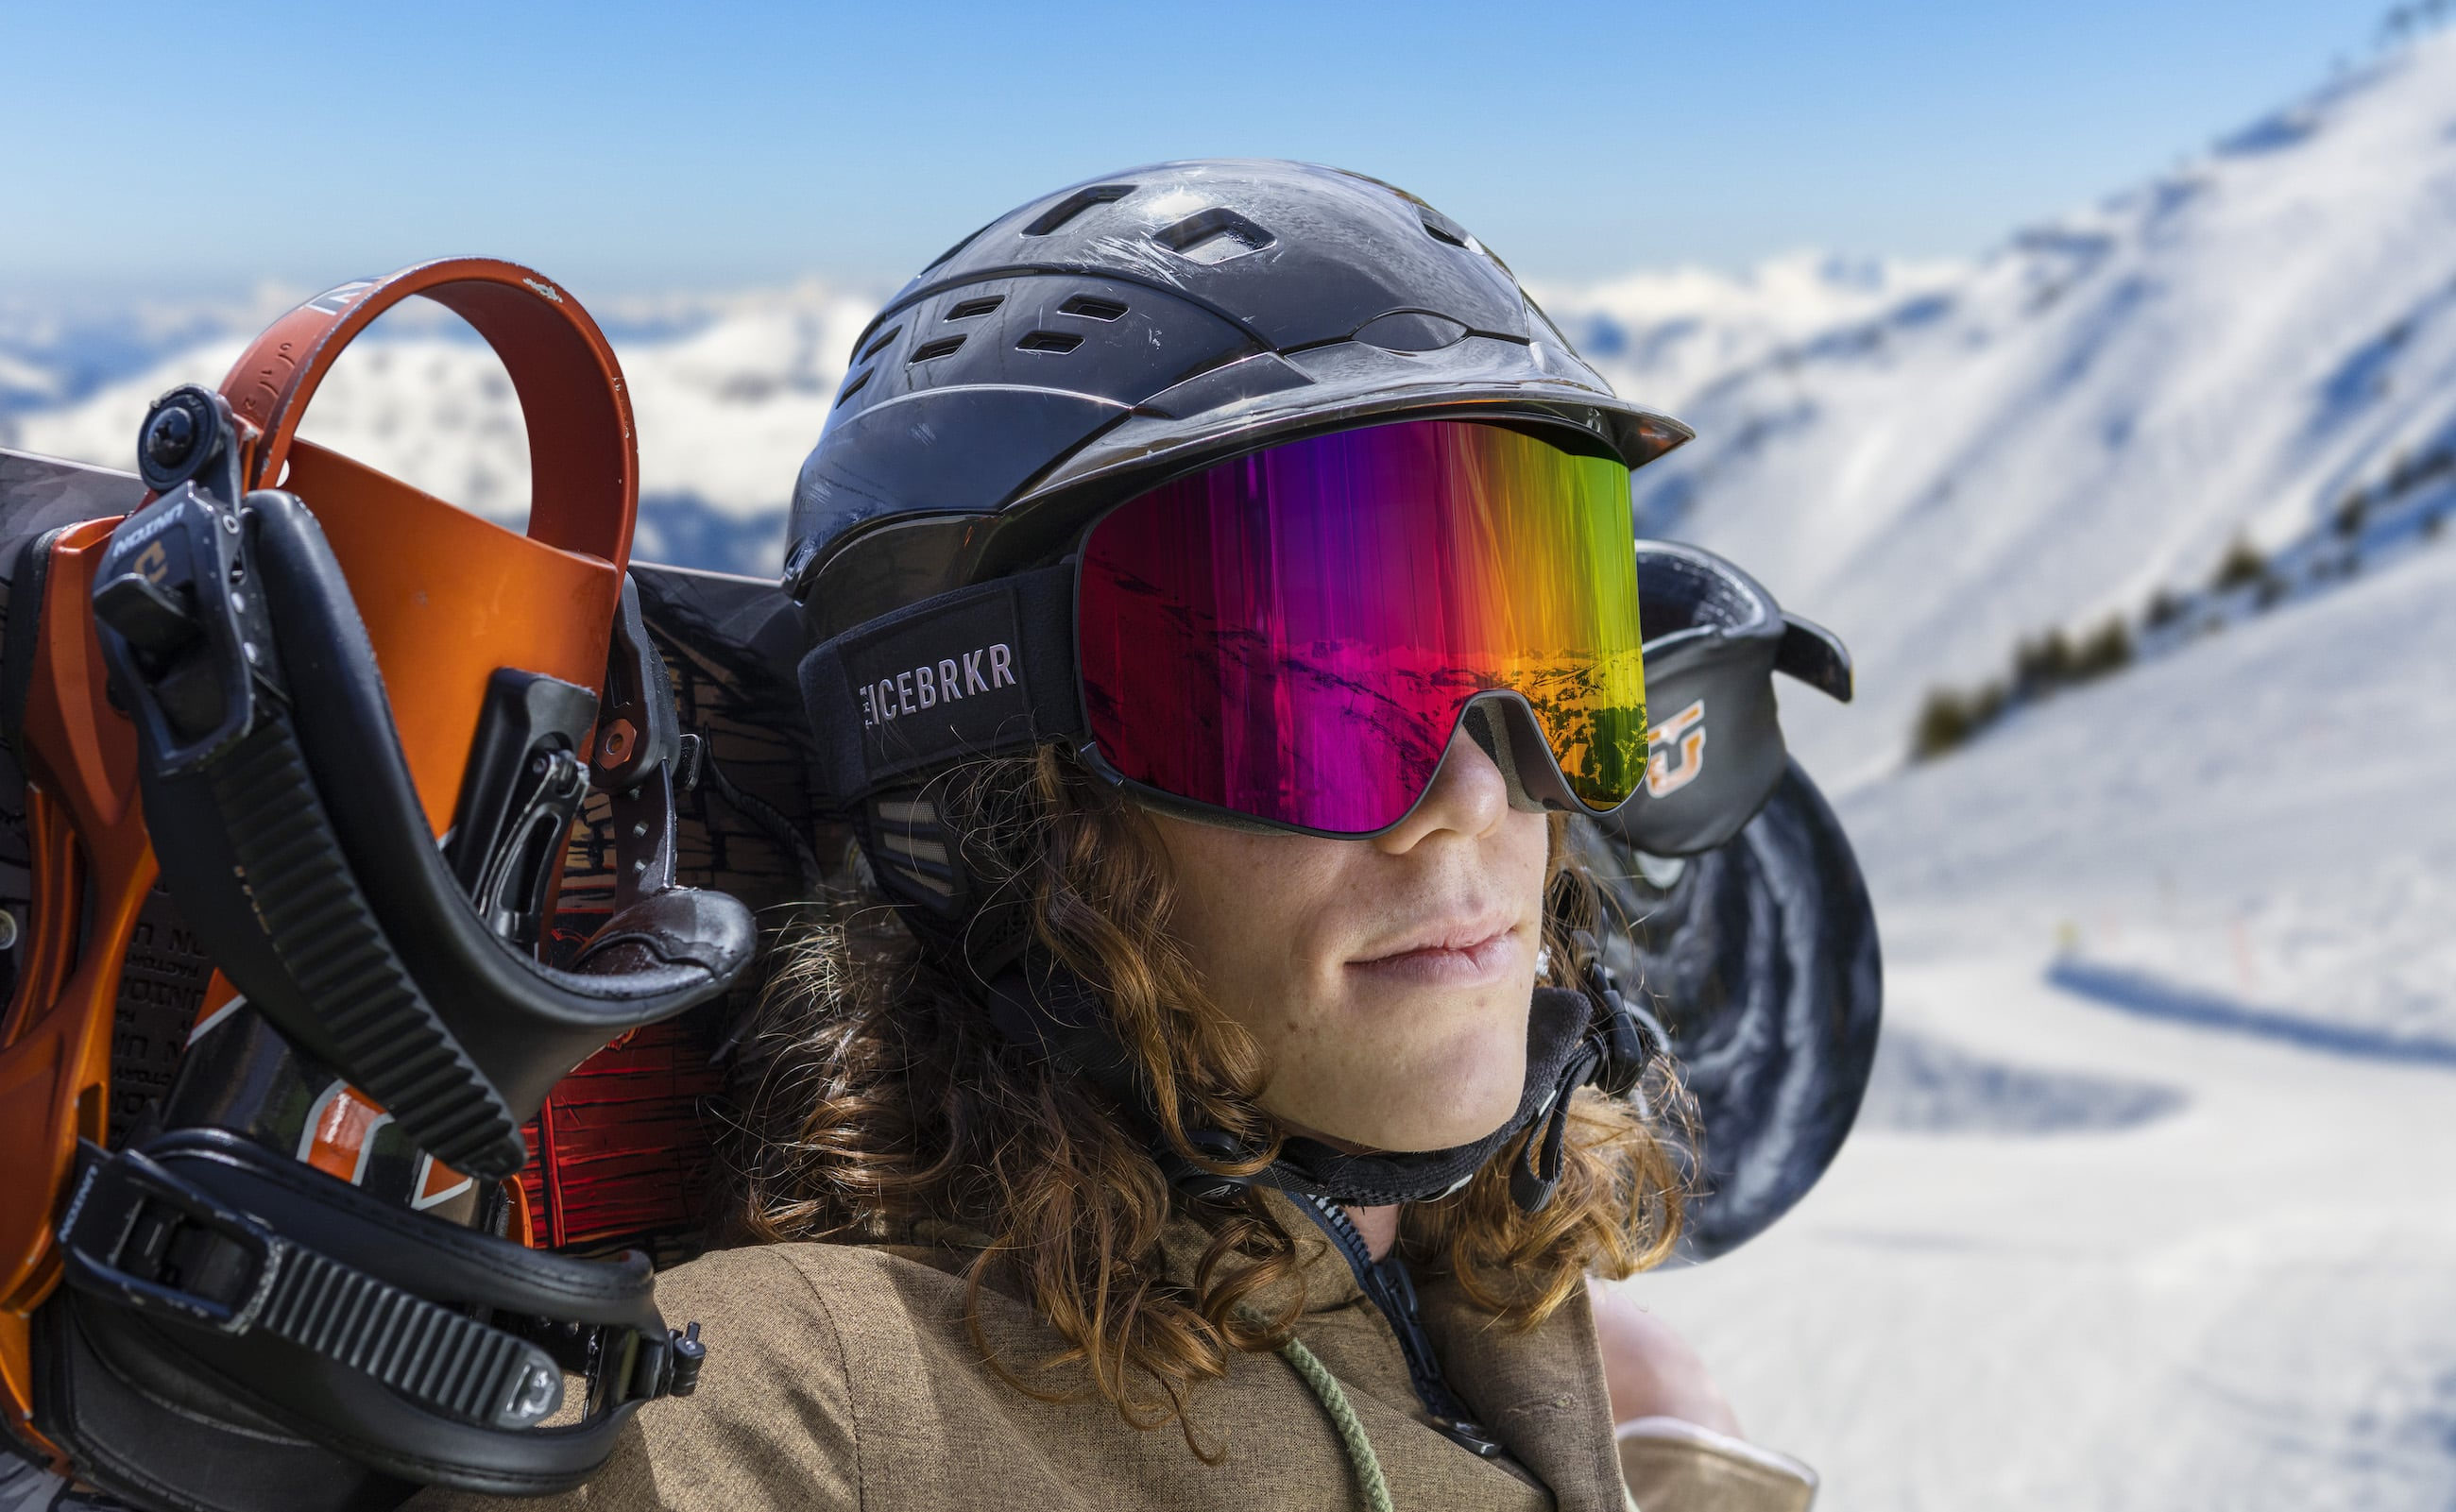 IceBRKR Bone Conduction Audio Ski Mask also has an intercom function